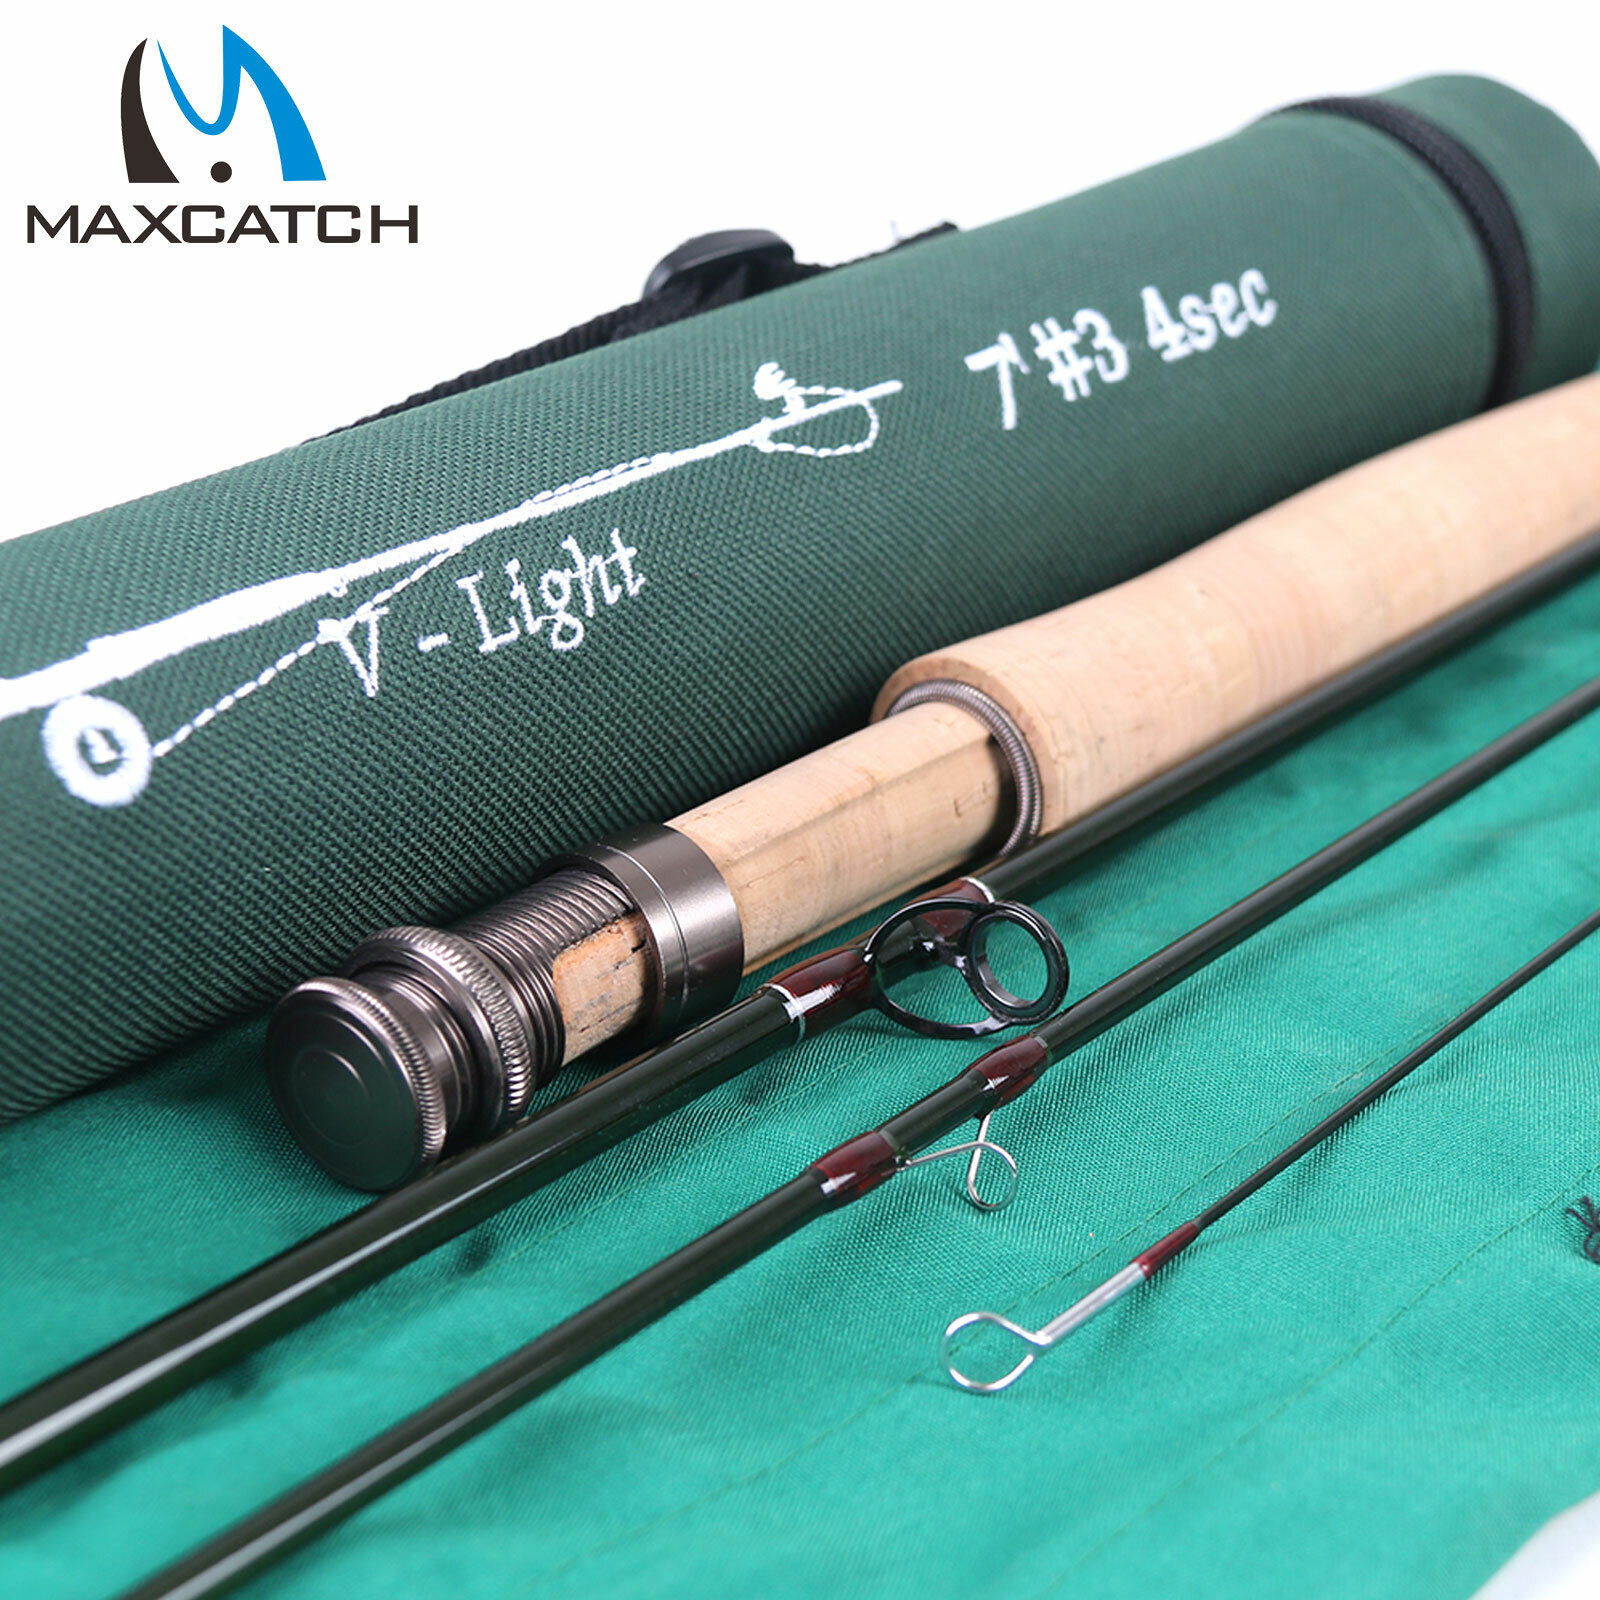 Maxcatch 1 2 3WT Fly Fishing Rod 6'   6'6   7'   7'6  Graphite IM10 Small Creek